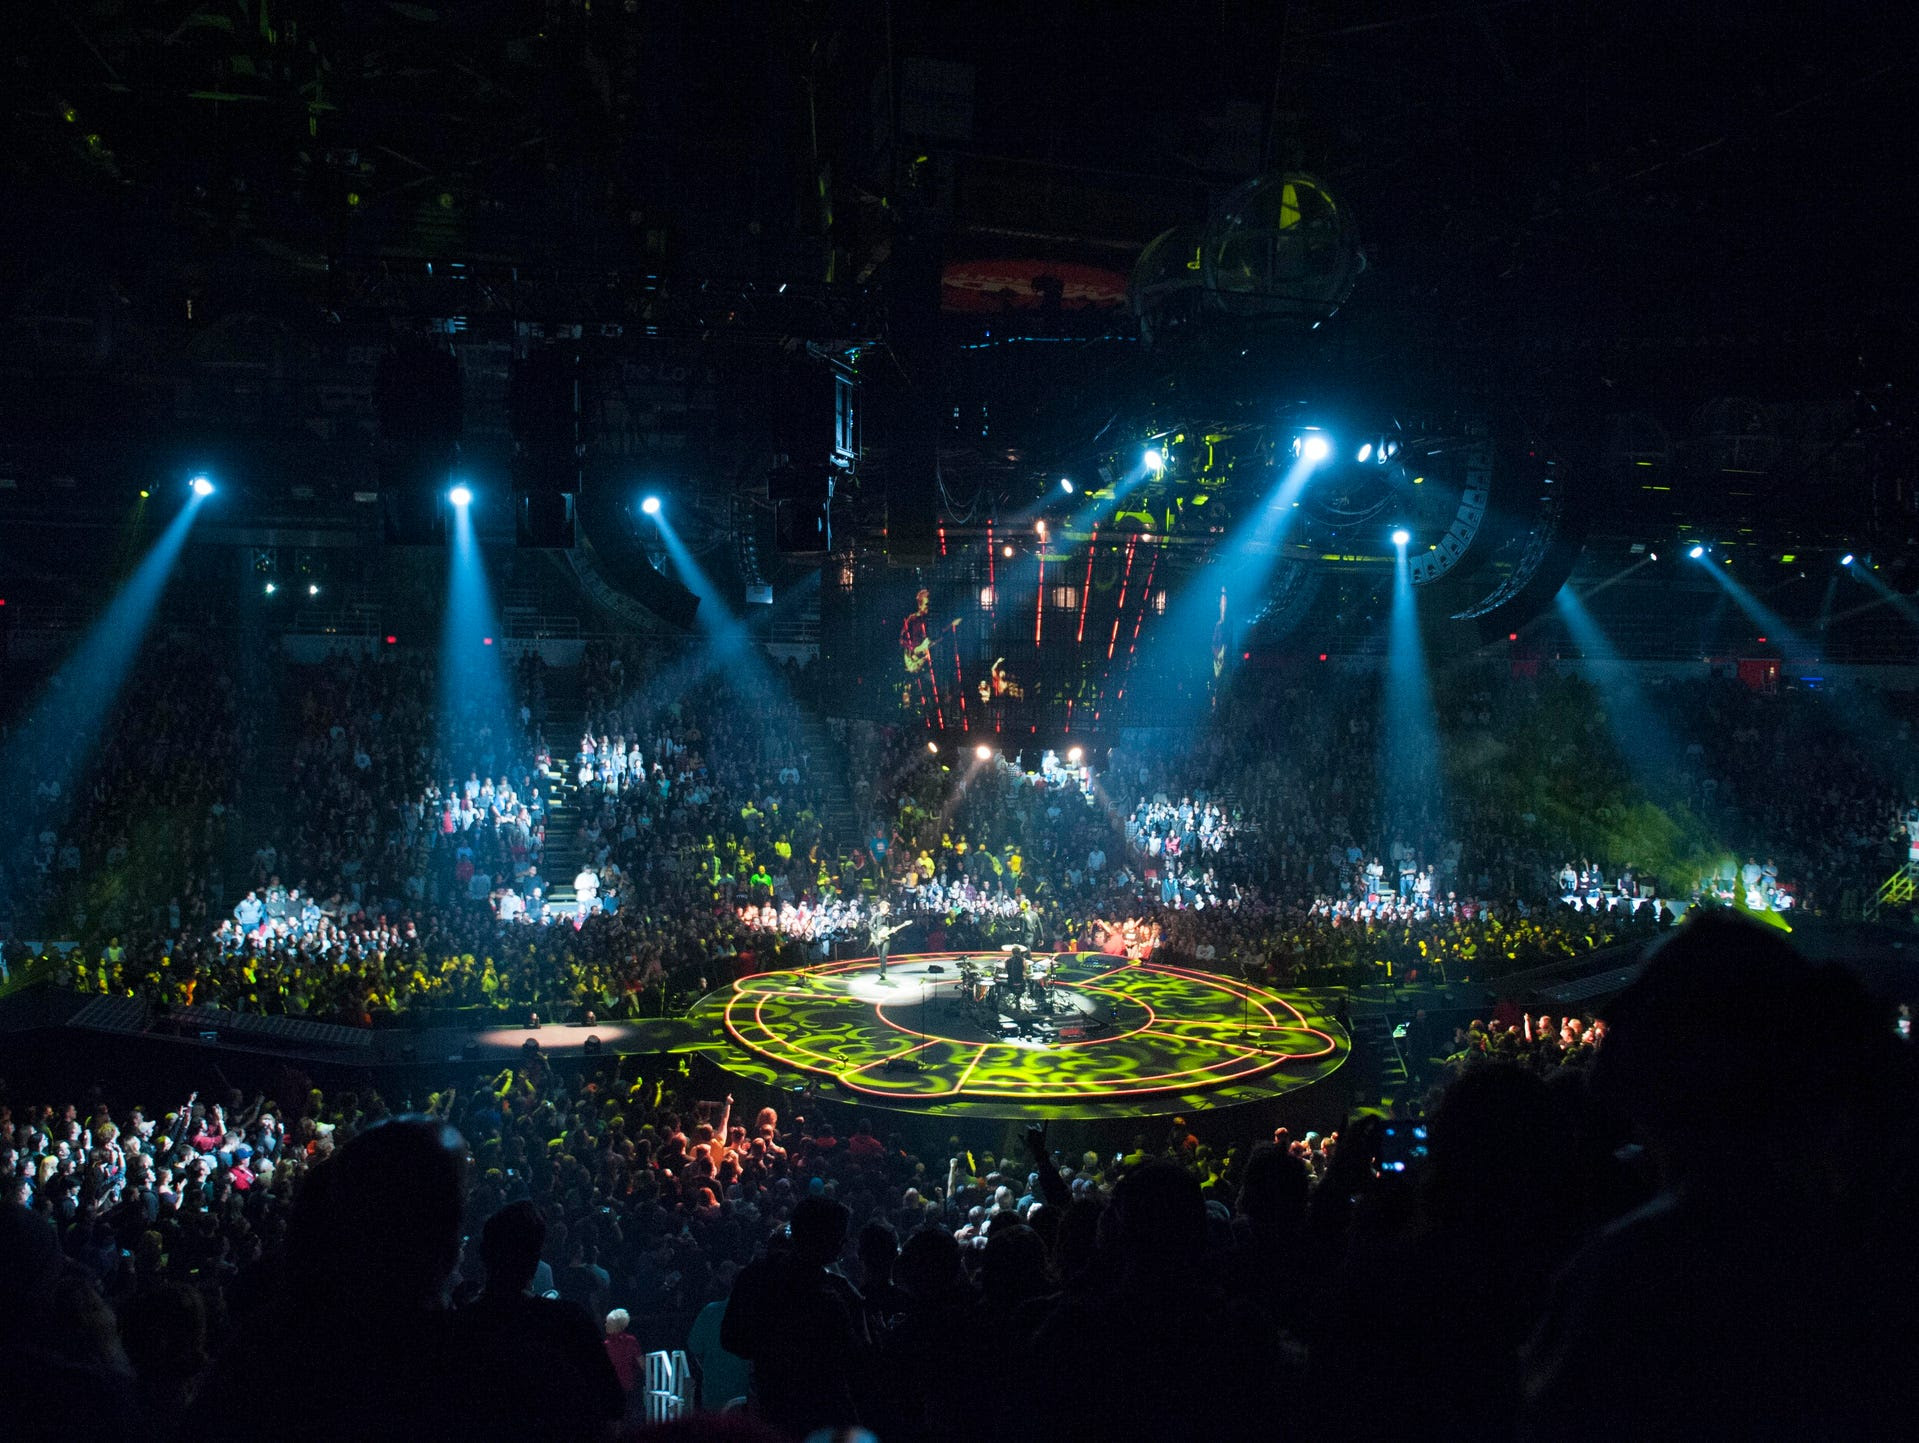 Muse performs on a circular stage in the middle of